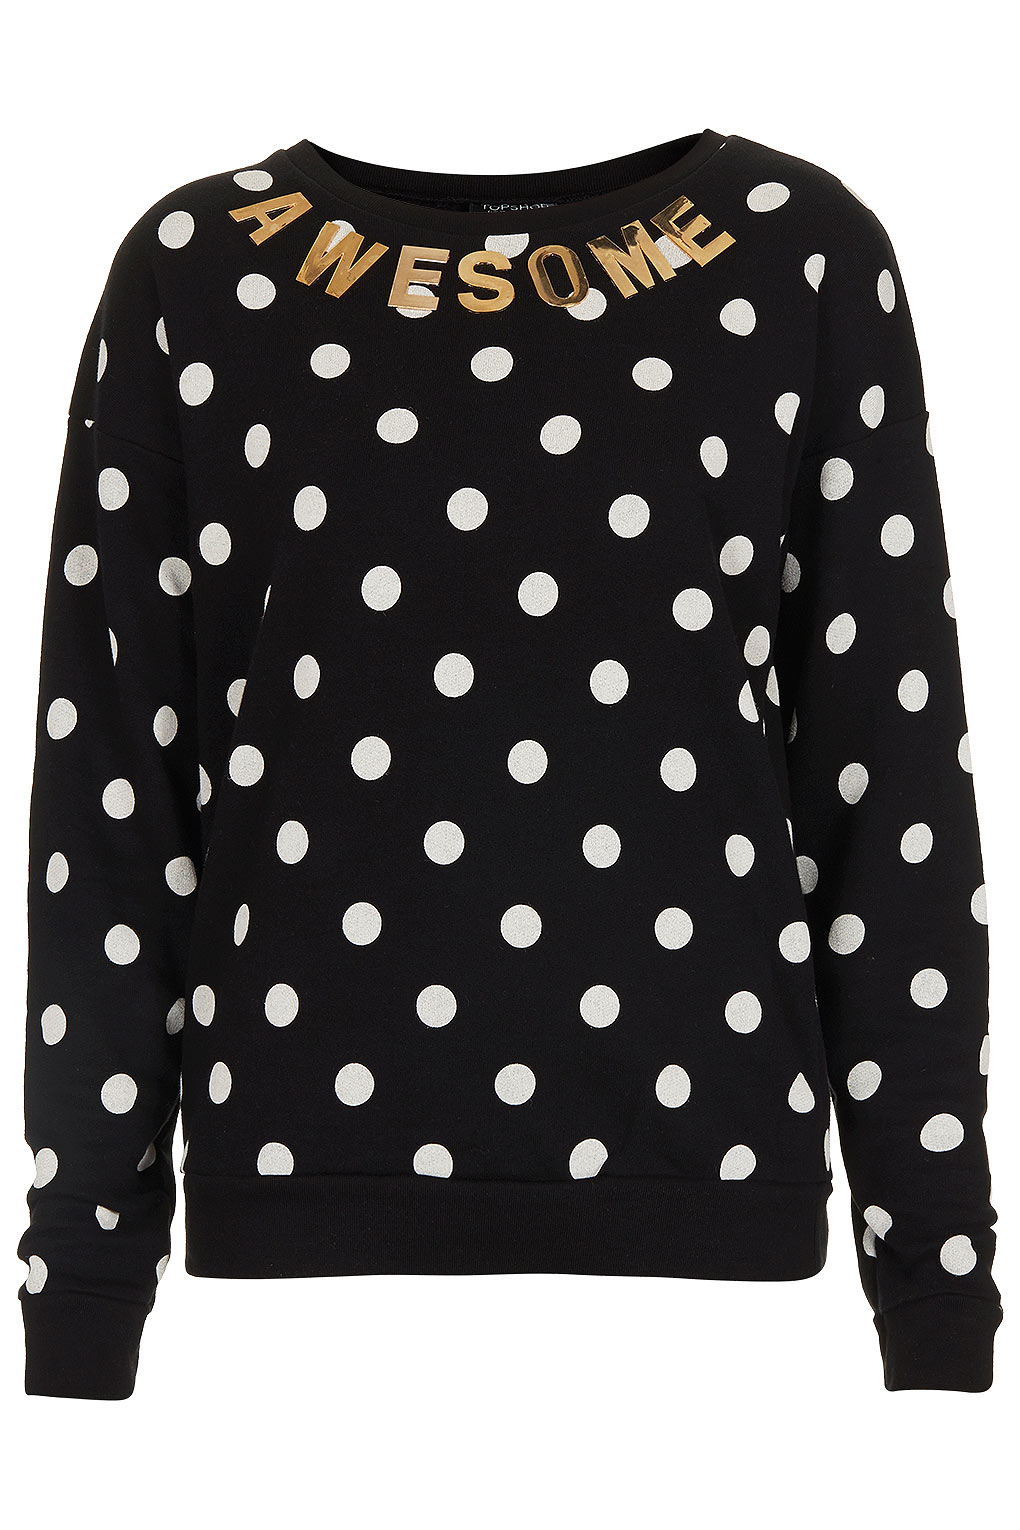 Topshop Black Gold Spotty Spot Jumper Awesome Sweater BNWT Letter UK 8 12 14 16 | eBay